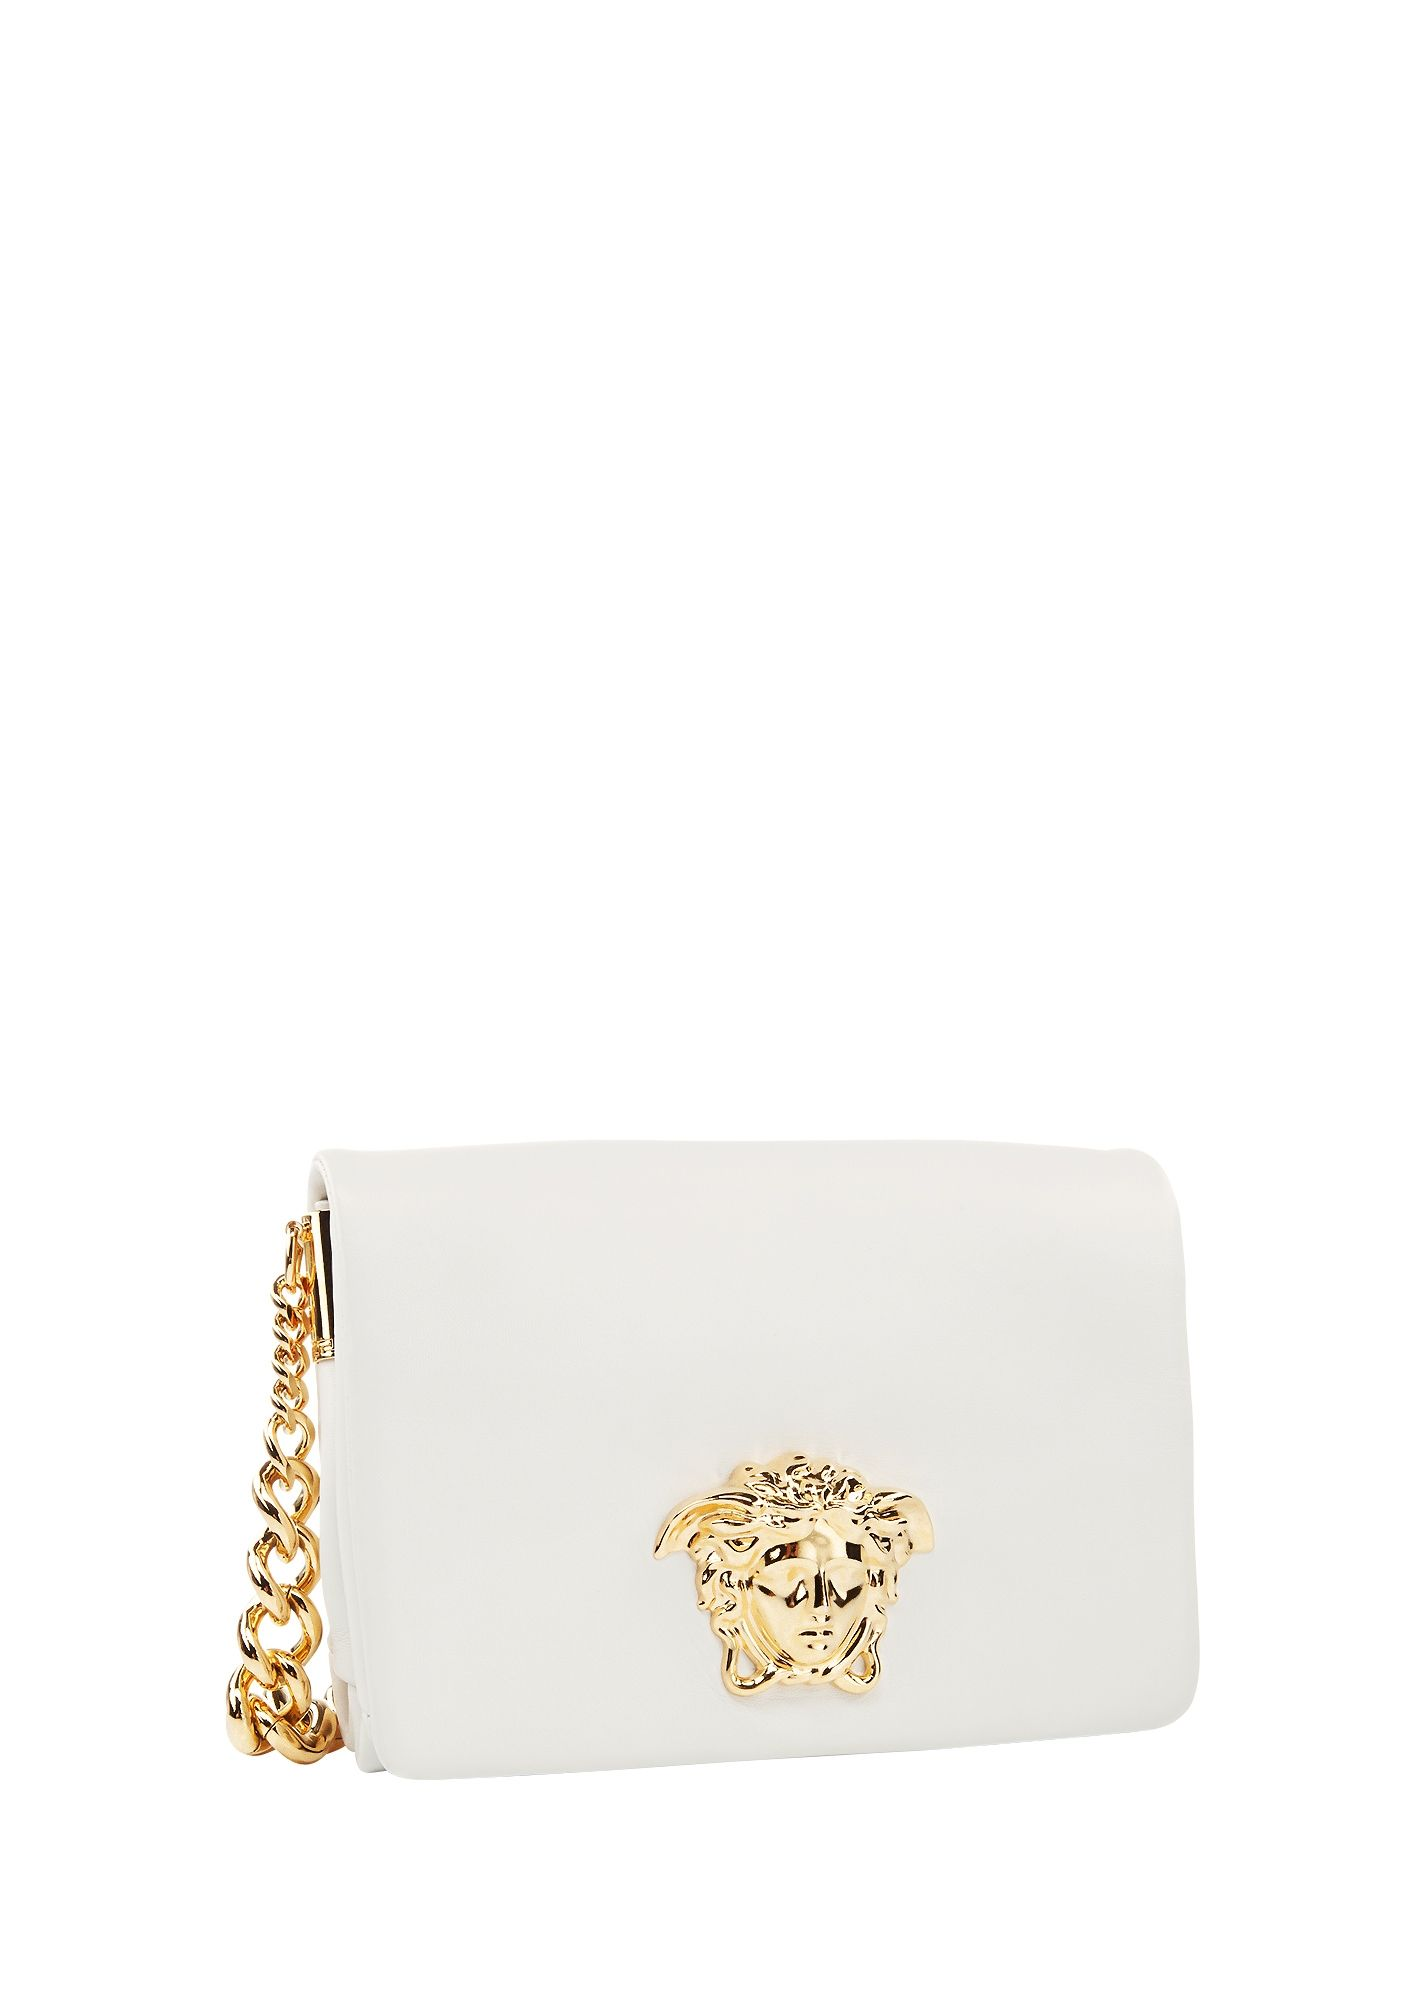 7b5e39e7699 This white #Versace Palazzo handbag, embellished with the gold Medusa head,  lends a lady-like accent to contemporary looks.